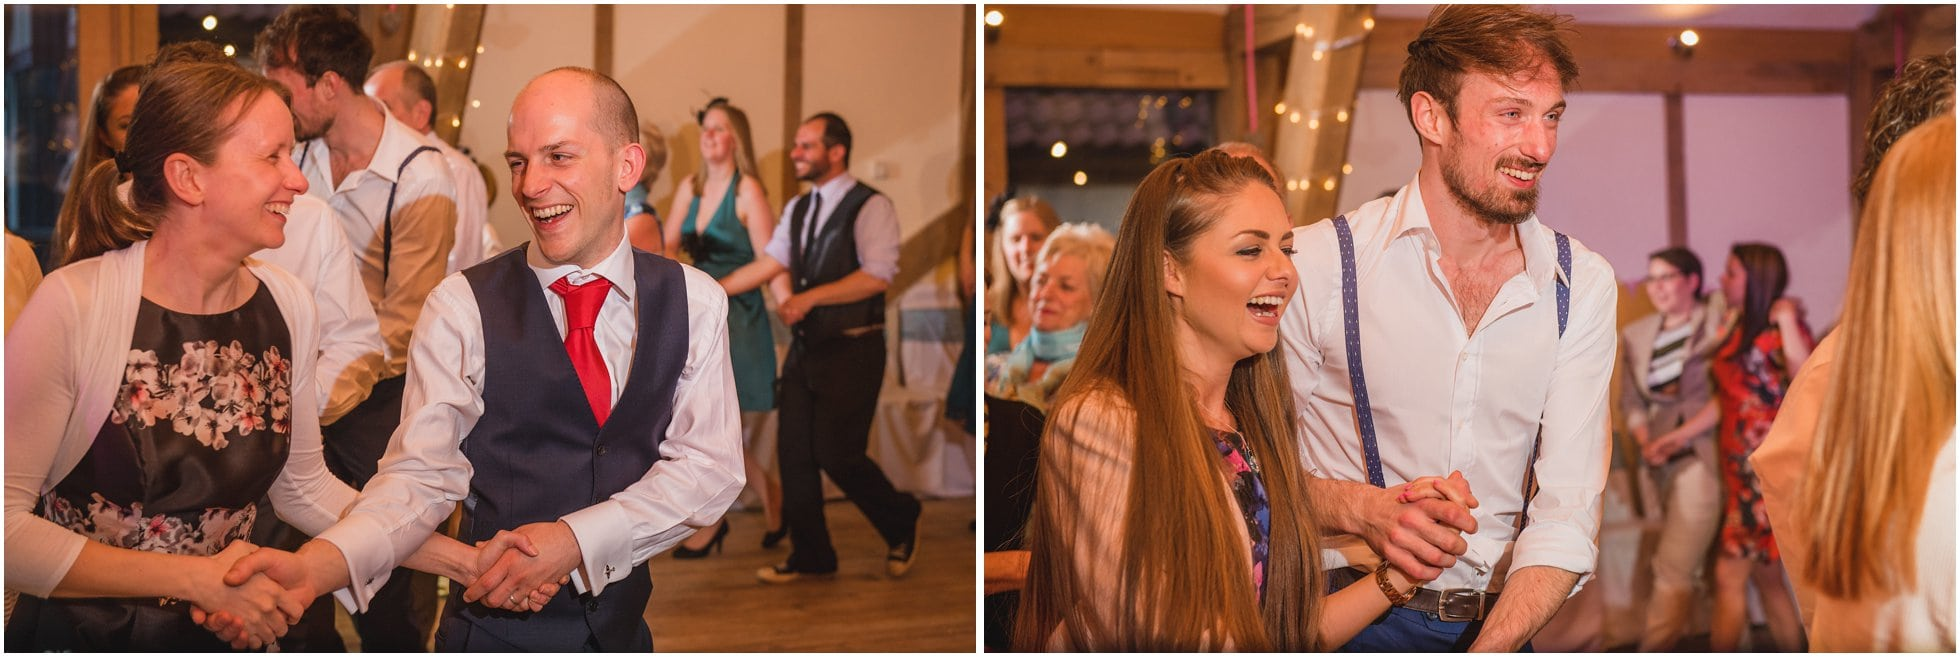 Dancefloor fun at Sandburn Hall